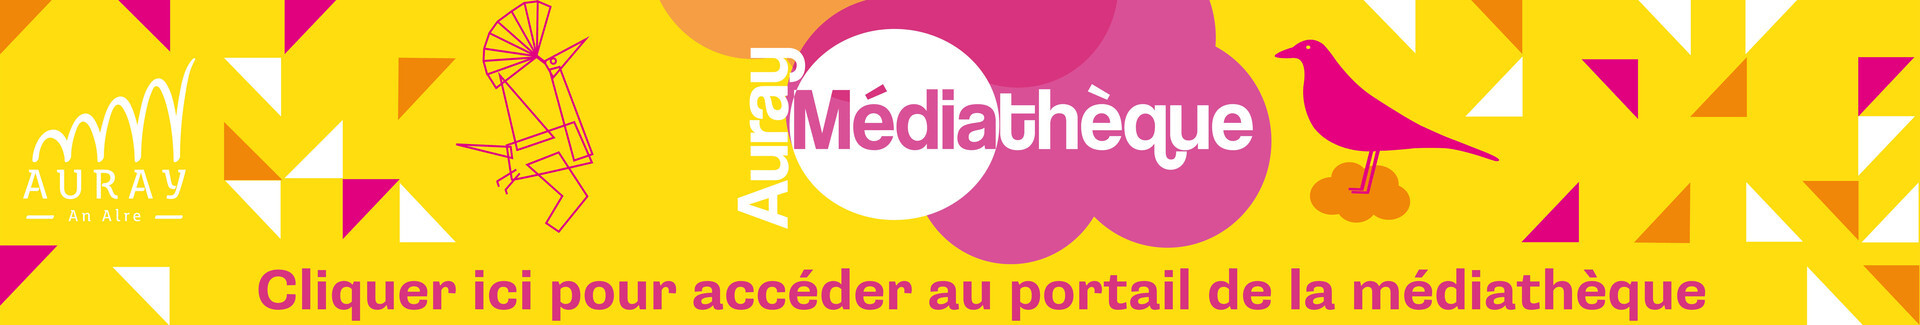 Bandeau-mediatheque1718_image-full.jpg